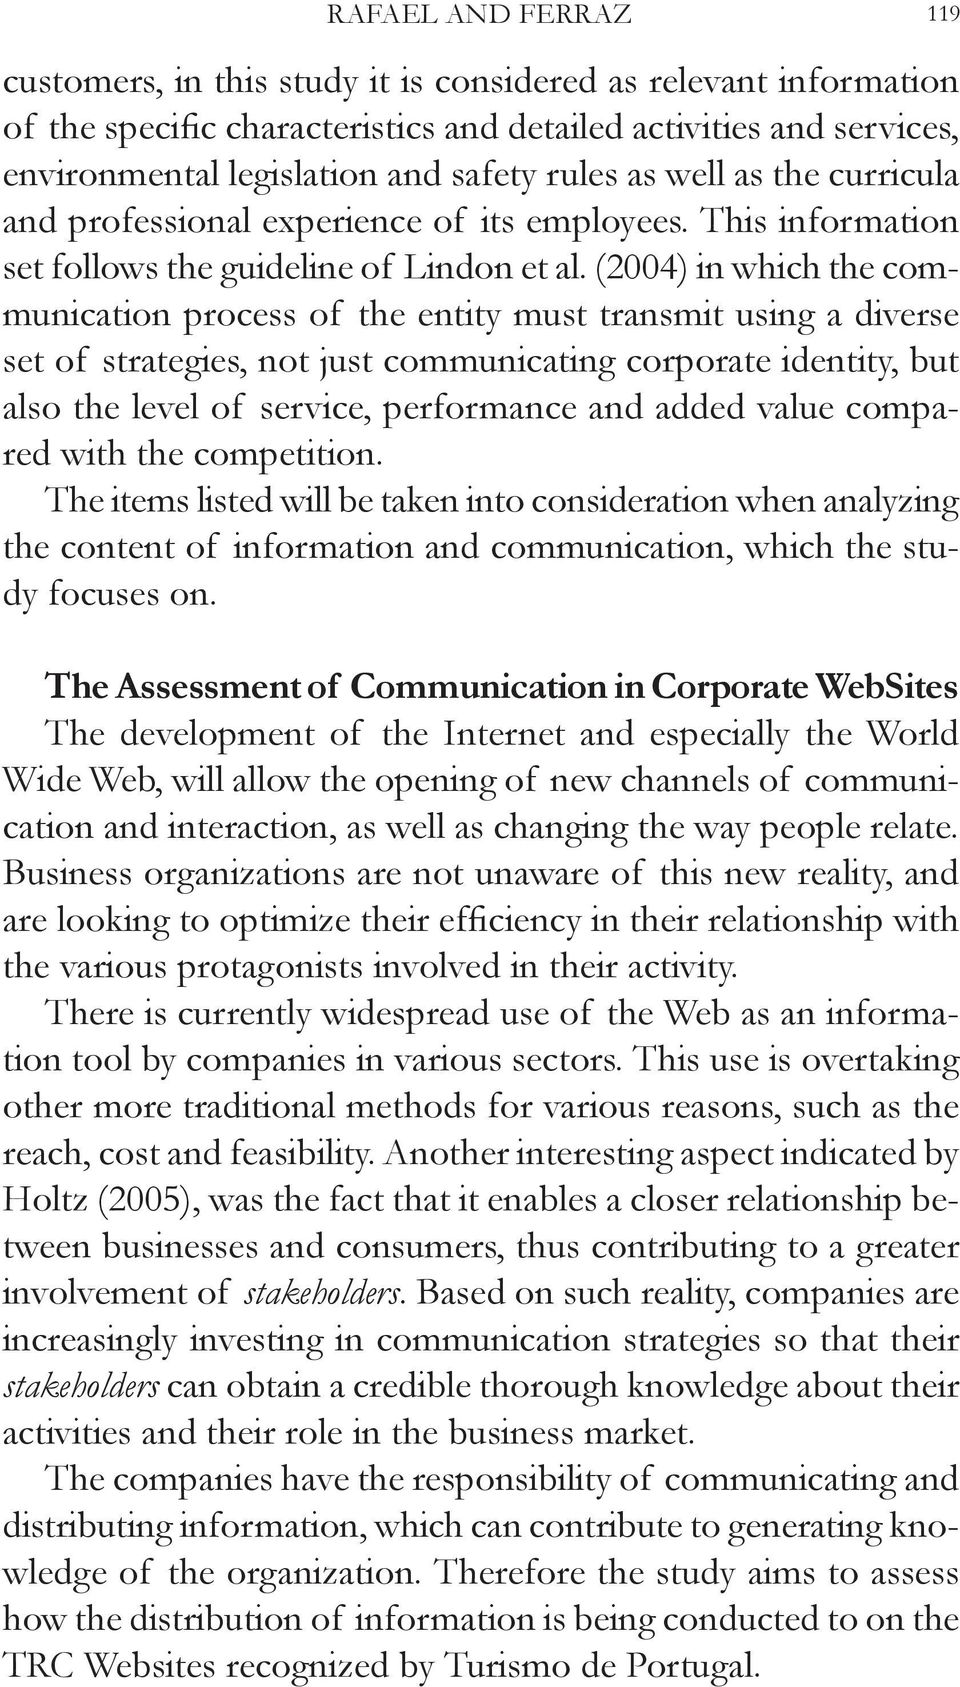 (2004) in which the communication process of the entity must transmit using a diverse set of strategies, not just communicating corporate identity, but also the level of service, performance and